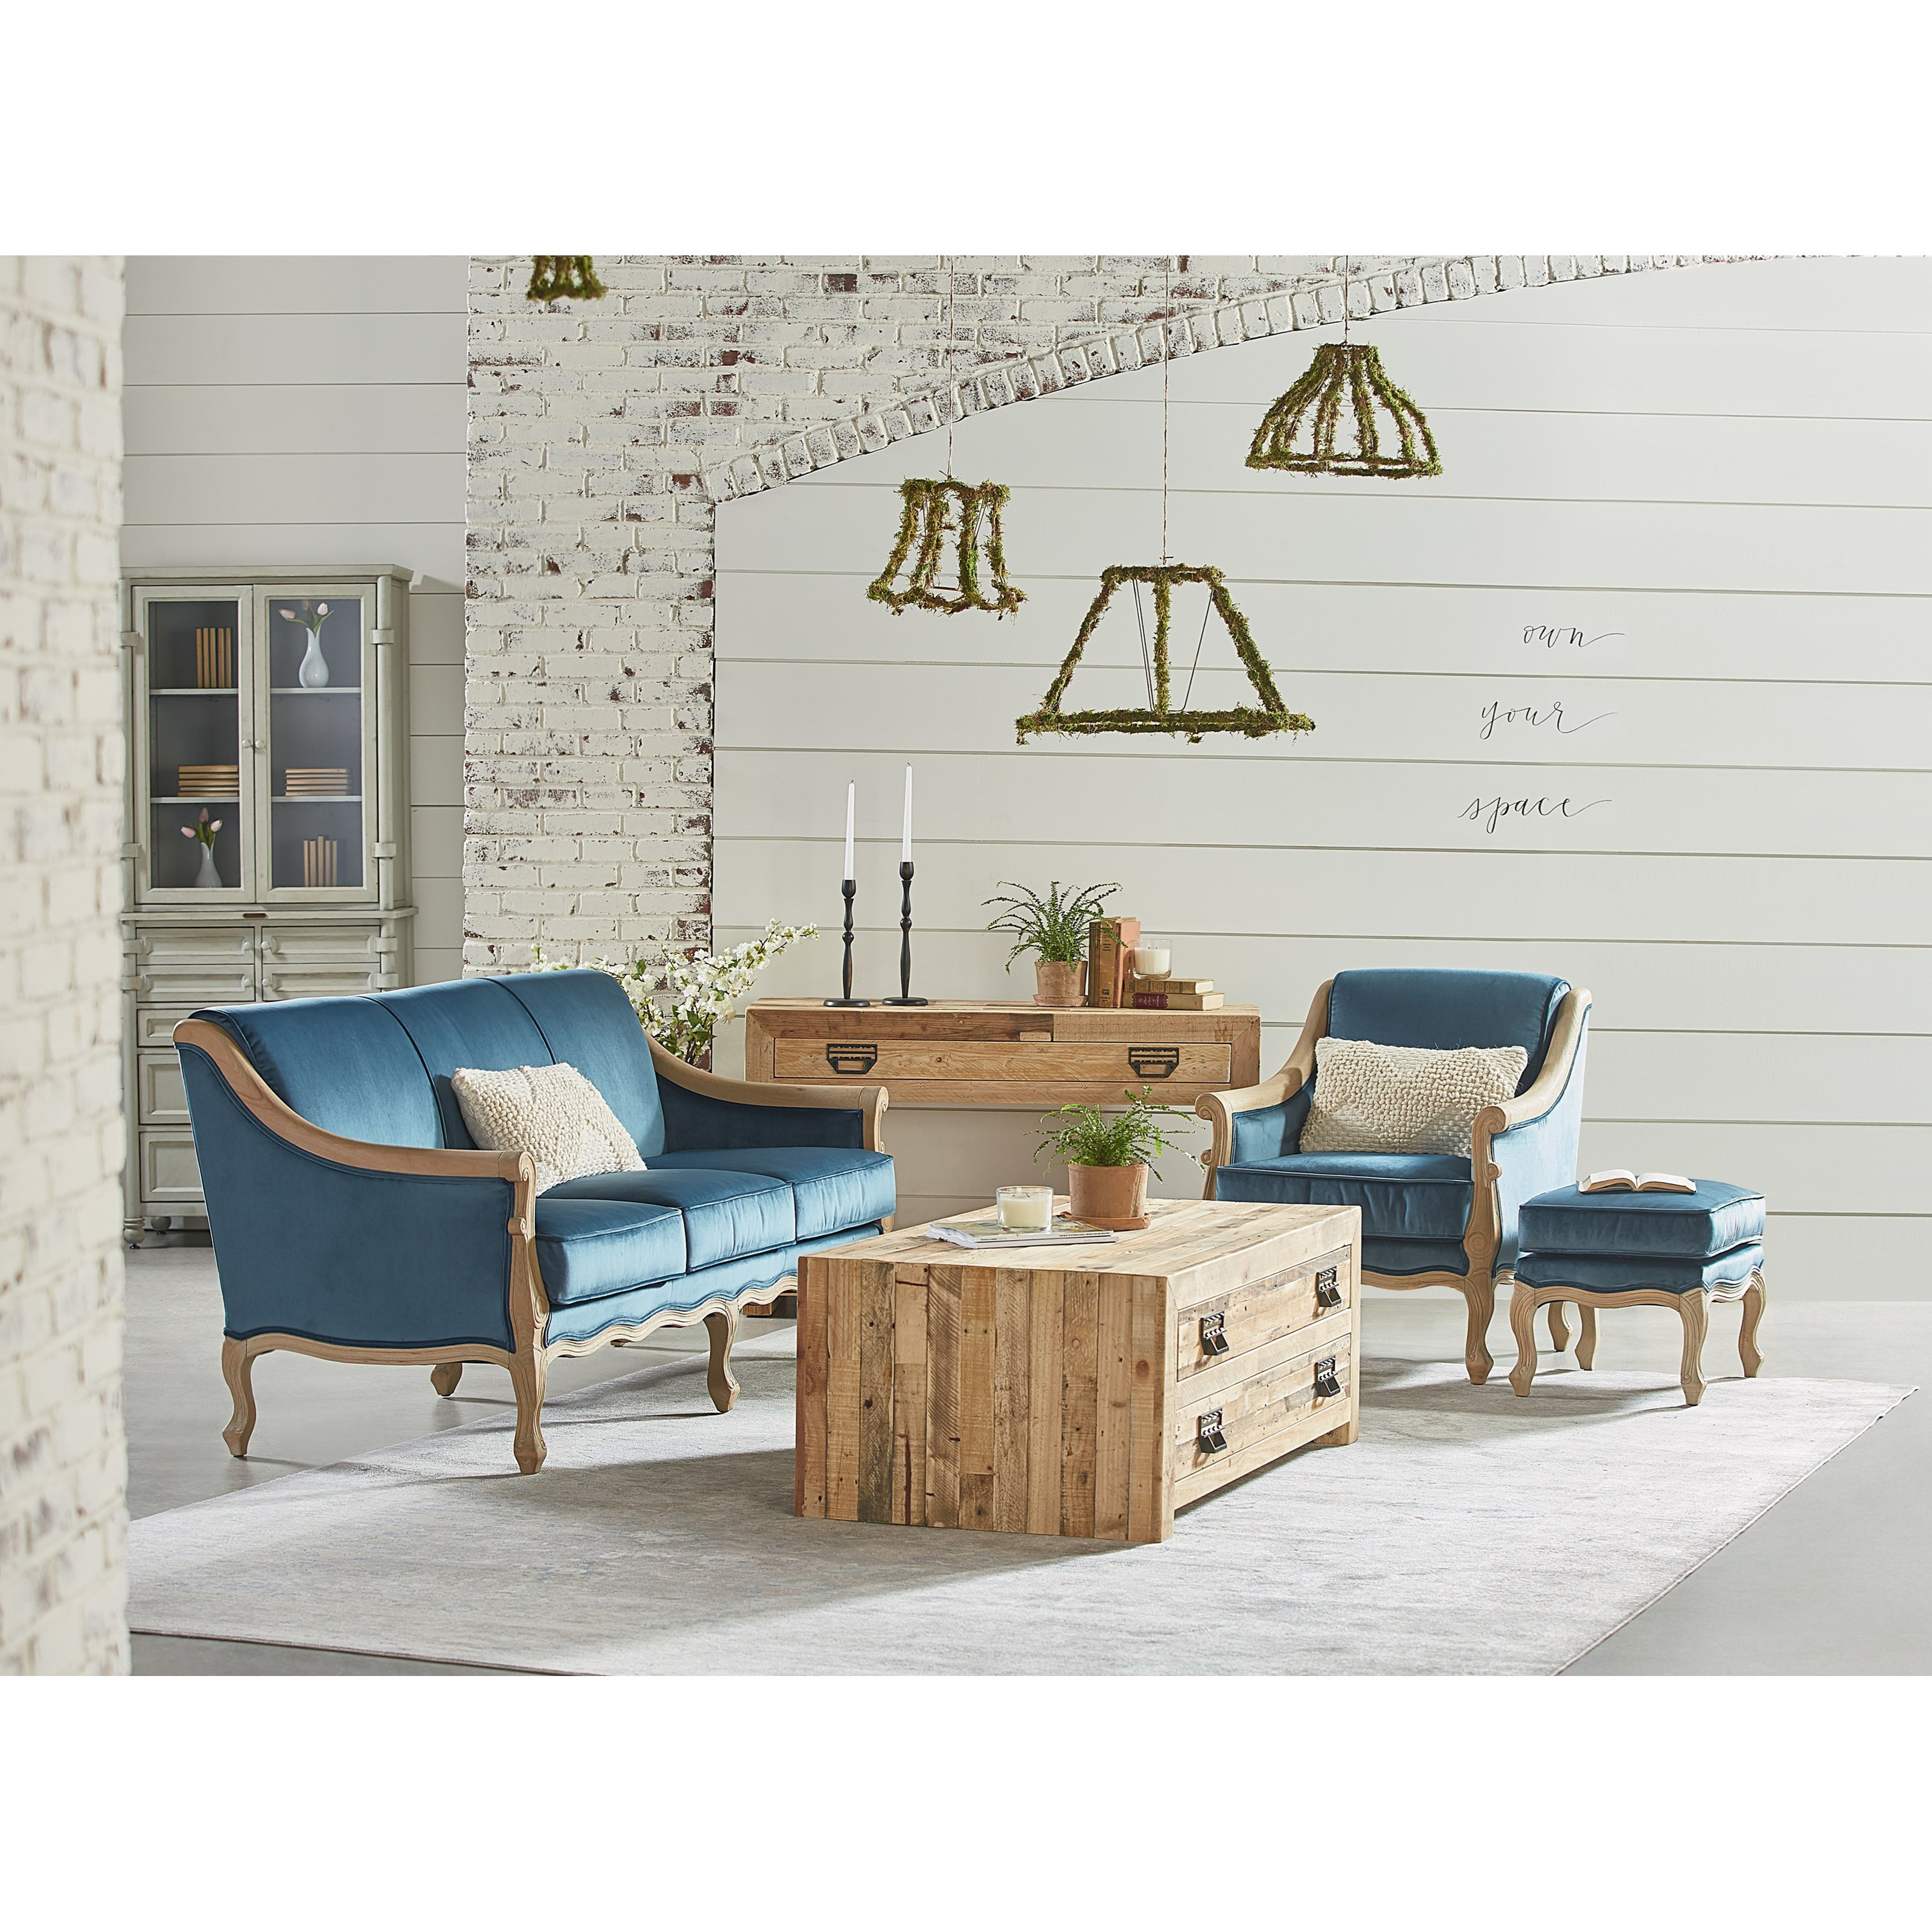 Mclennan living room group by magnolia home by joanna for Living room designs by joanna gaines